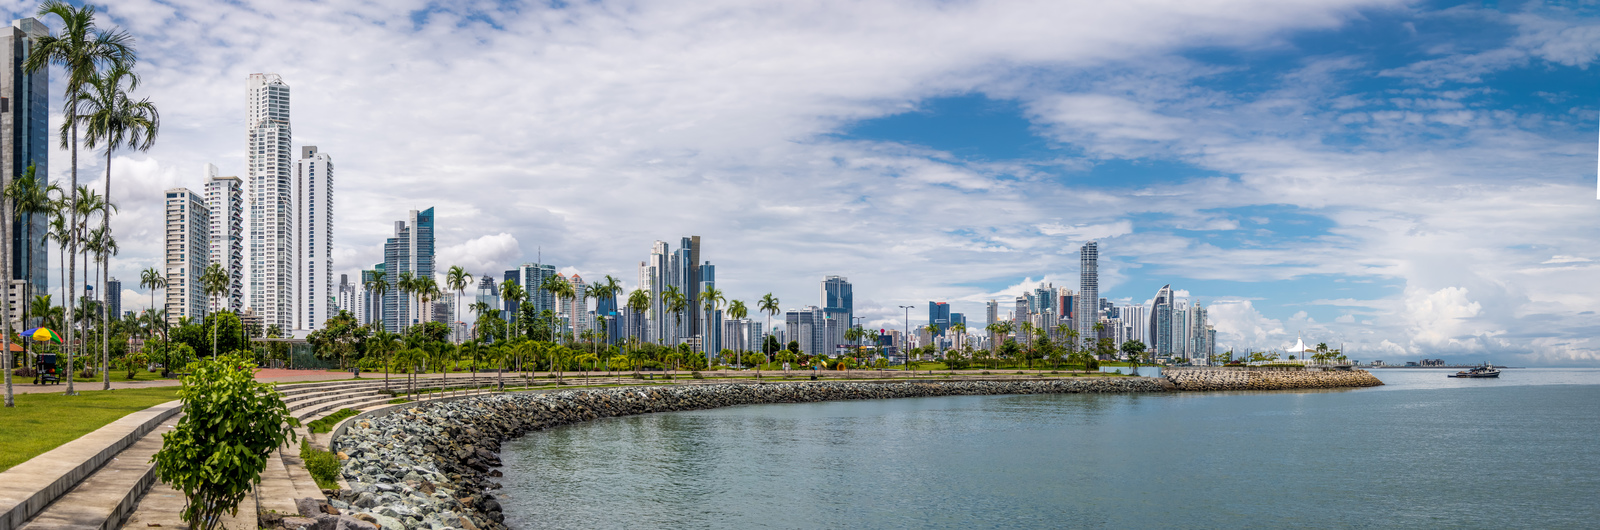 panama city city header